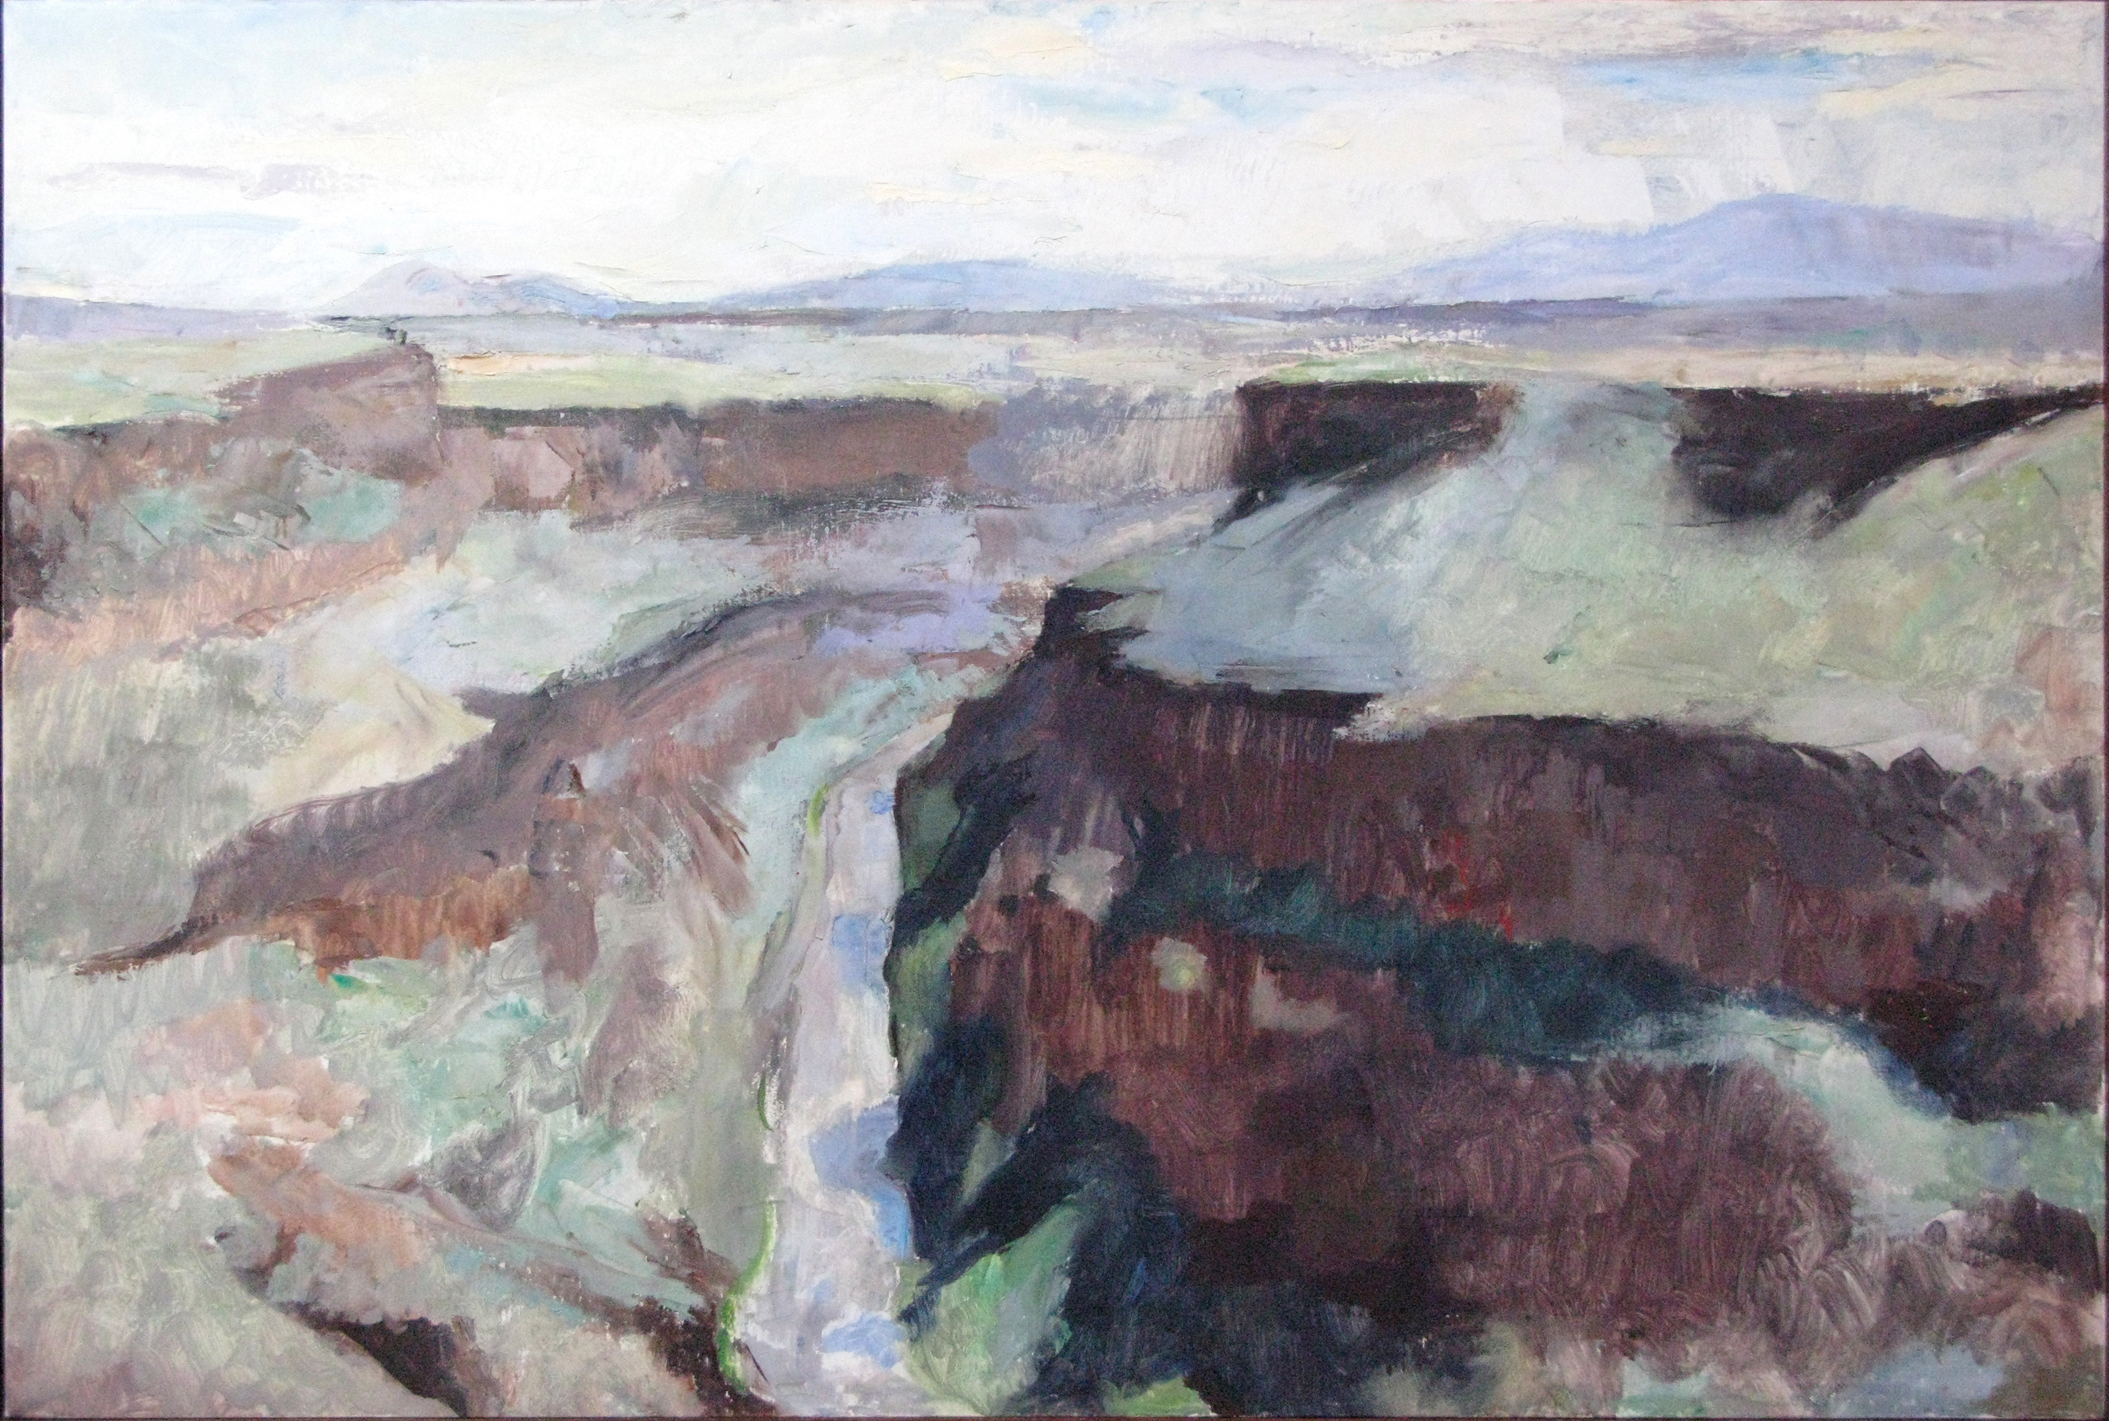 Rio Grand Gorge, NM, 24 x 36 inches, oil on linen